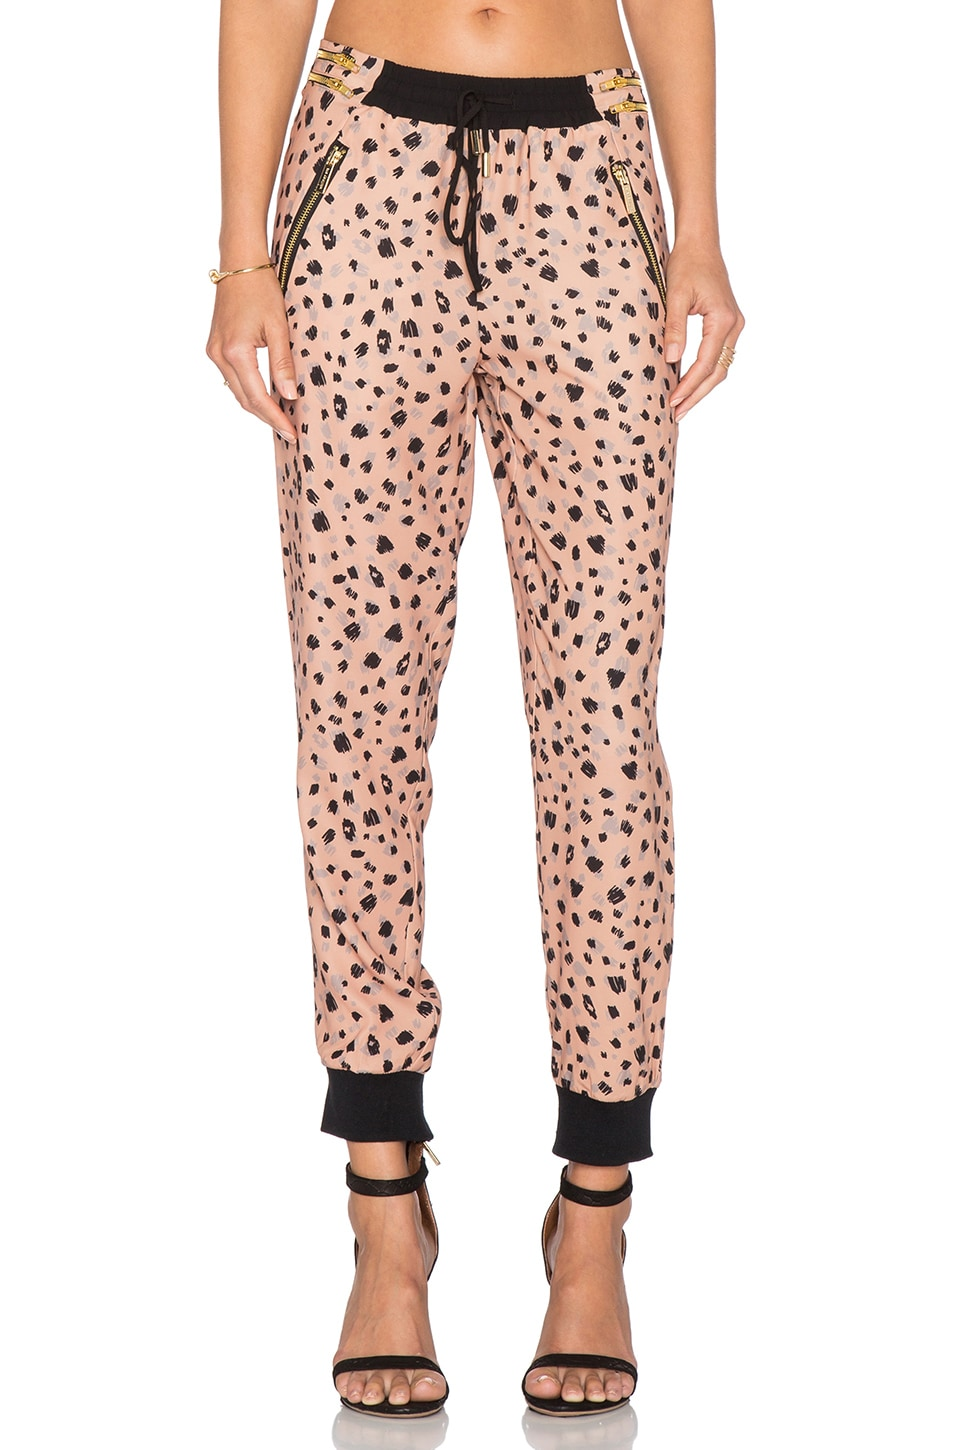 Whitney Eve Glass Beach Pant in Sketchy Leo